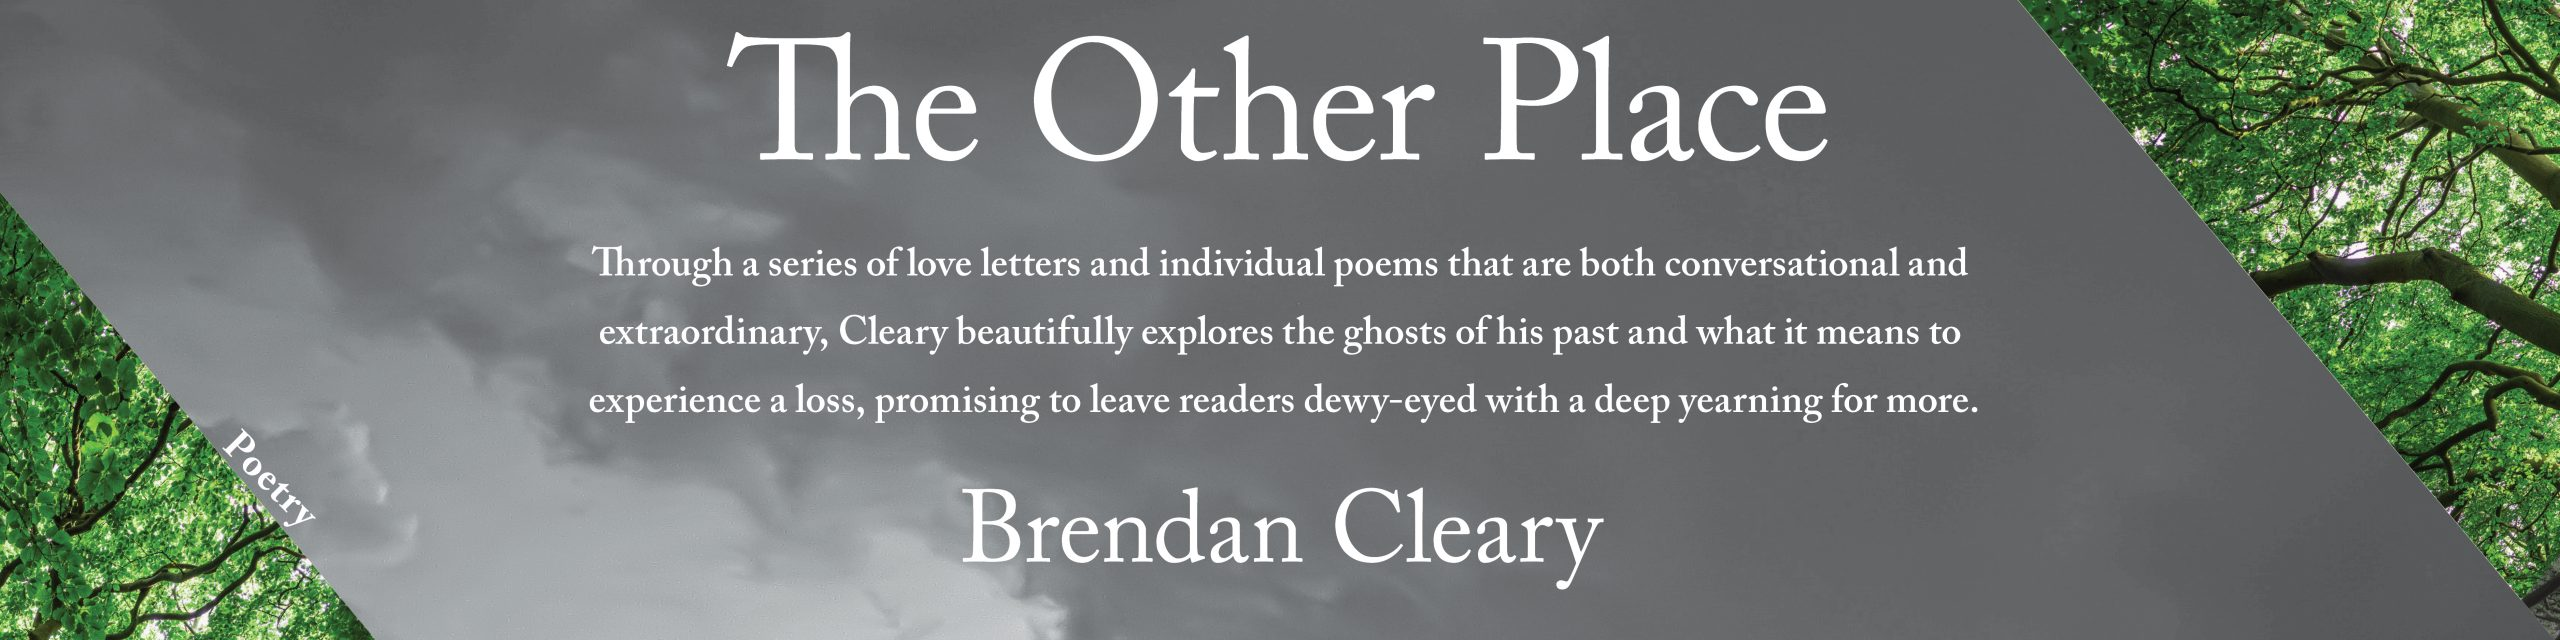 Promotional banner celebrating The Other Place by Brendan Cleary, a collection of poems